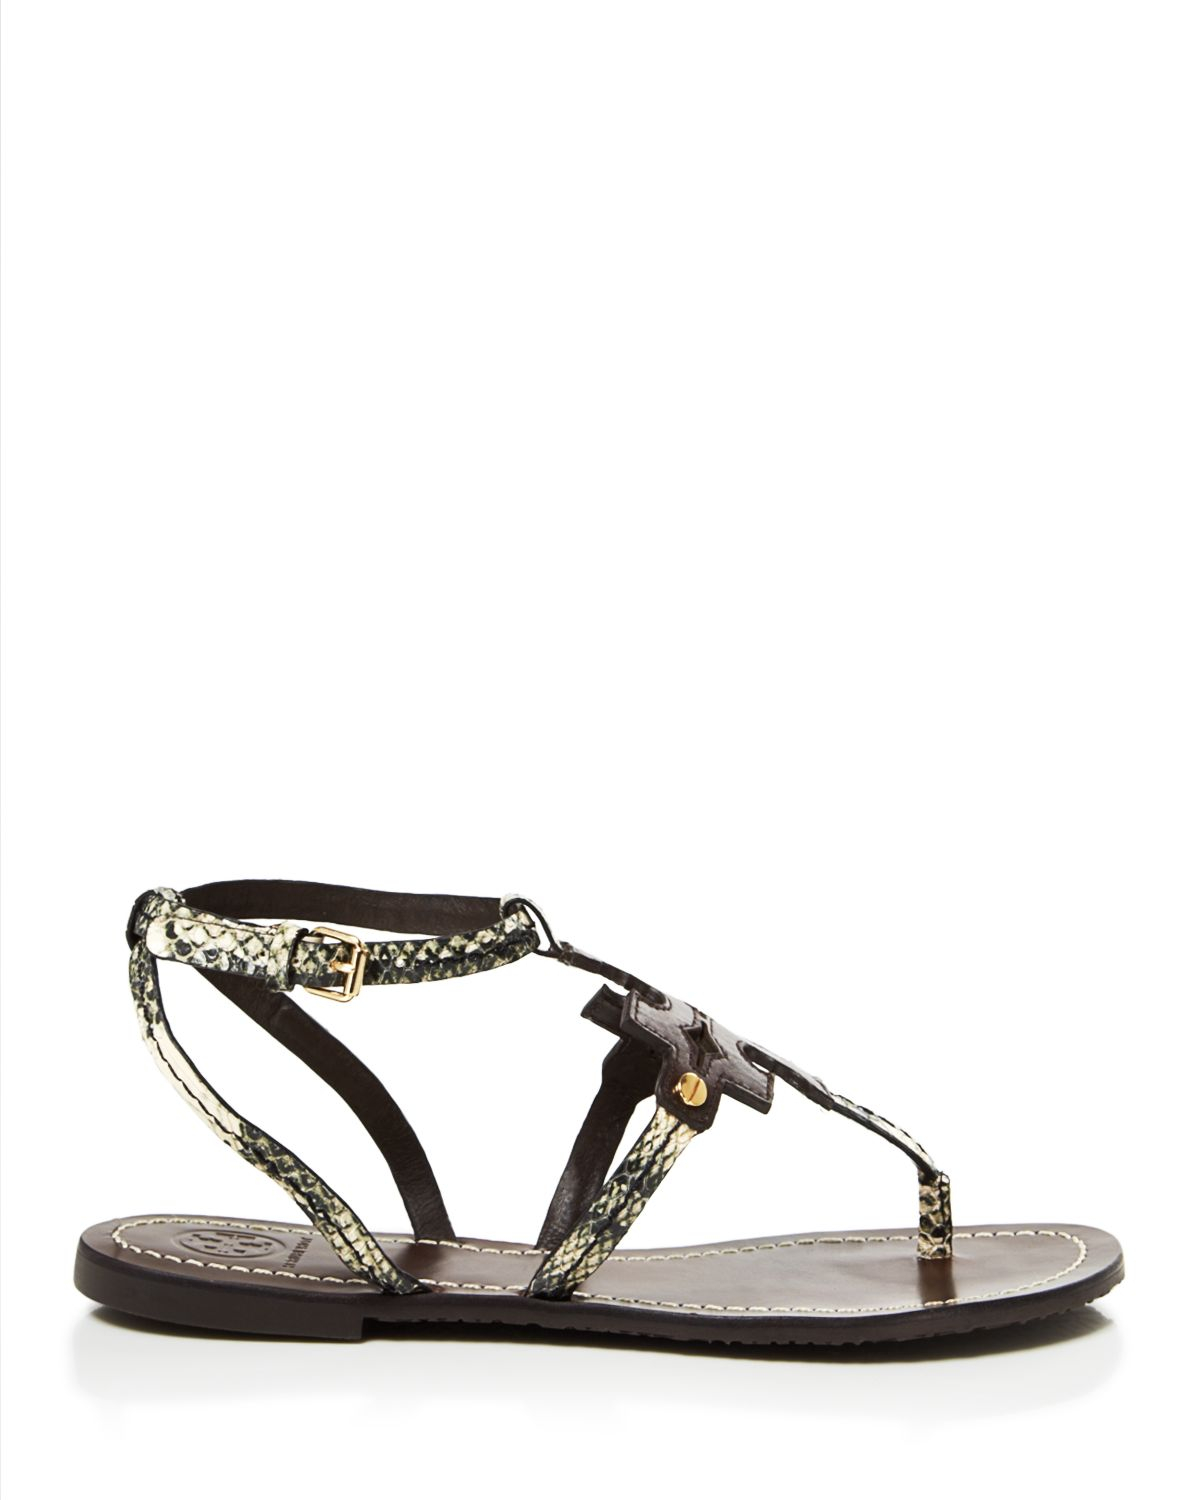 Gallery. Previously sold at: Bloomingdale's · Women's Thong Sandals - Tory Burch Flat Thong Sandals - Chandler In Black Lyst